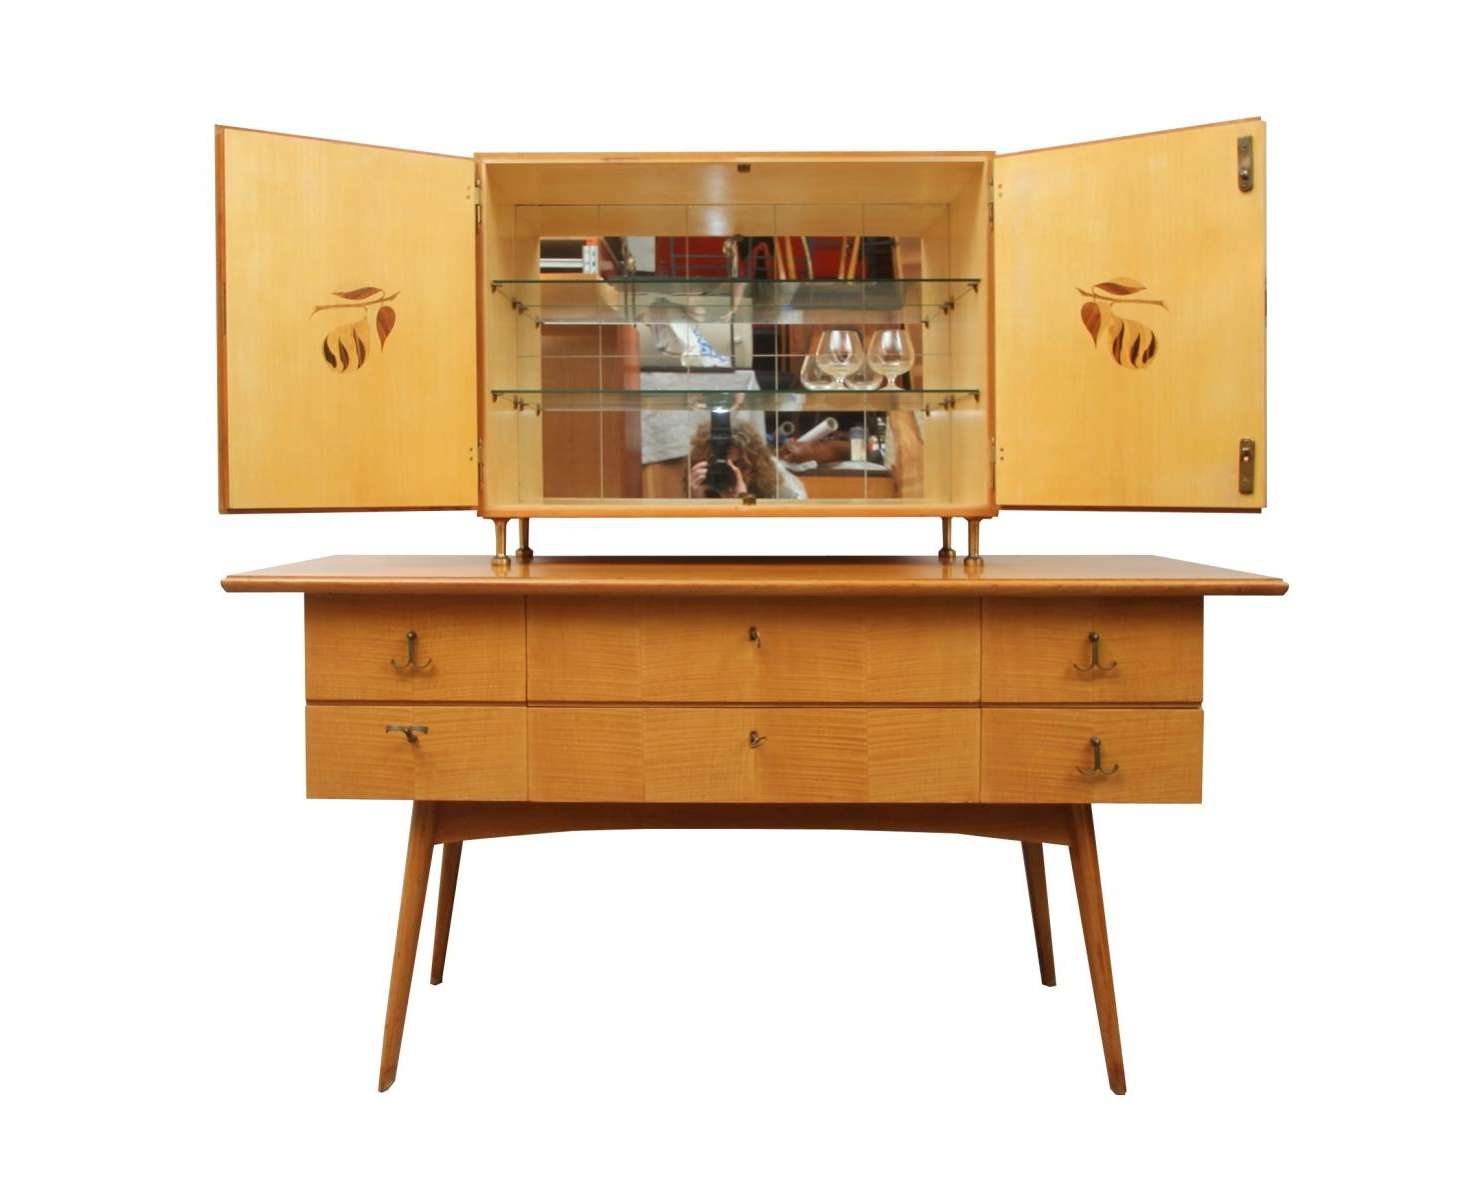 Cherry Wood Sideboard And Bar Cabinet, 1950S For Sale At Pamono Inside Sideboards Bar Cabinet (View 4 of 20)